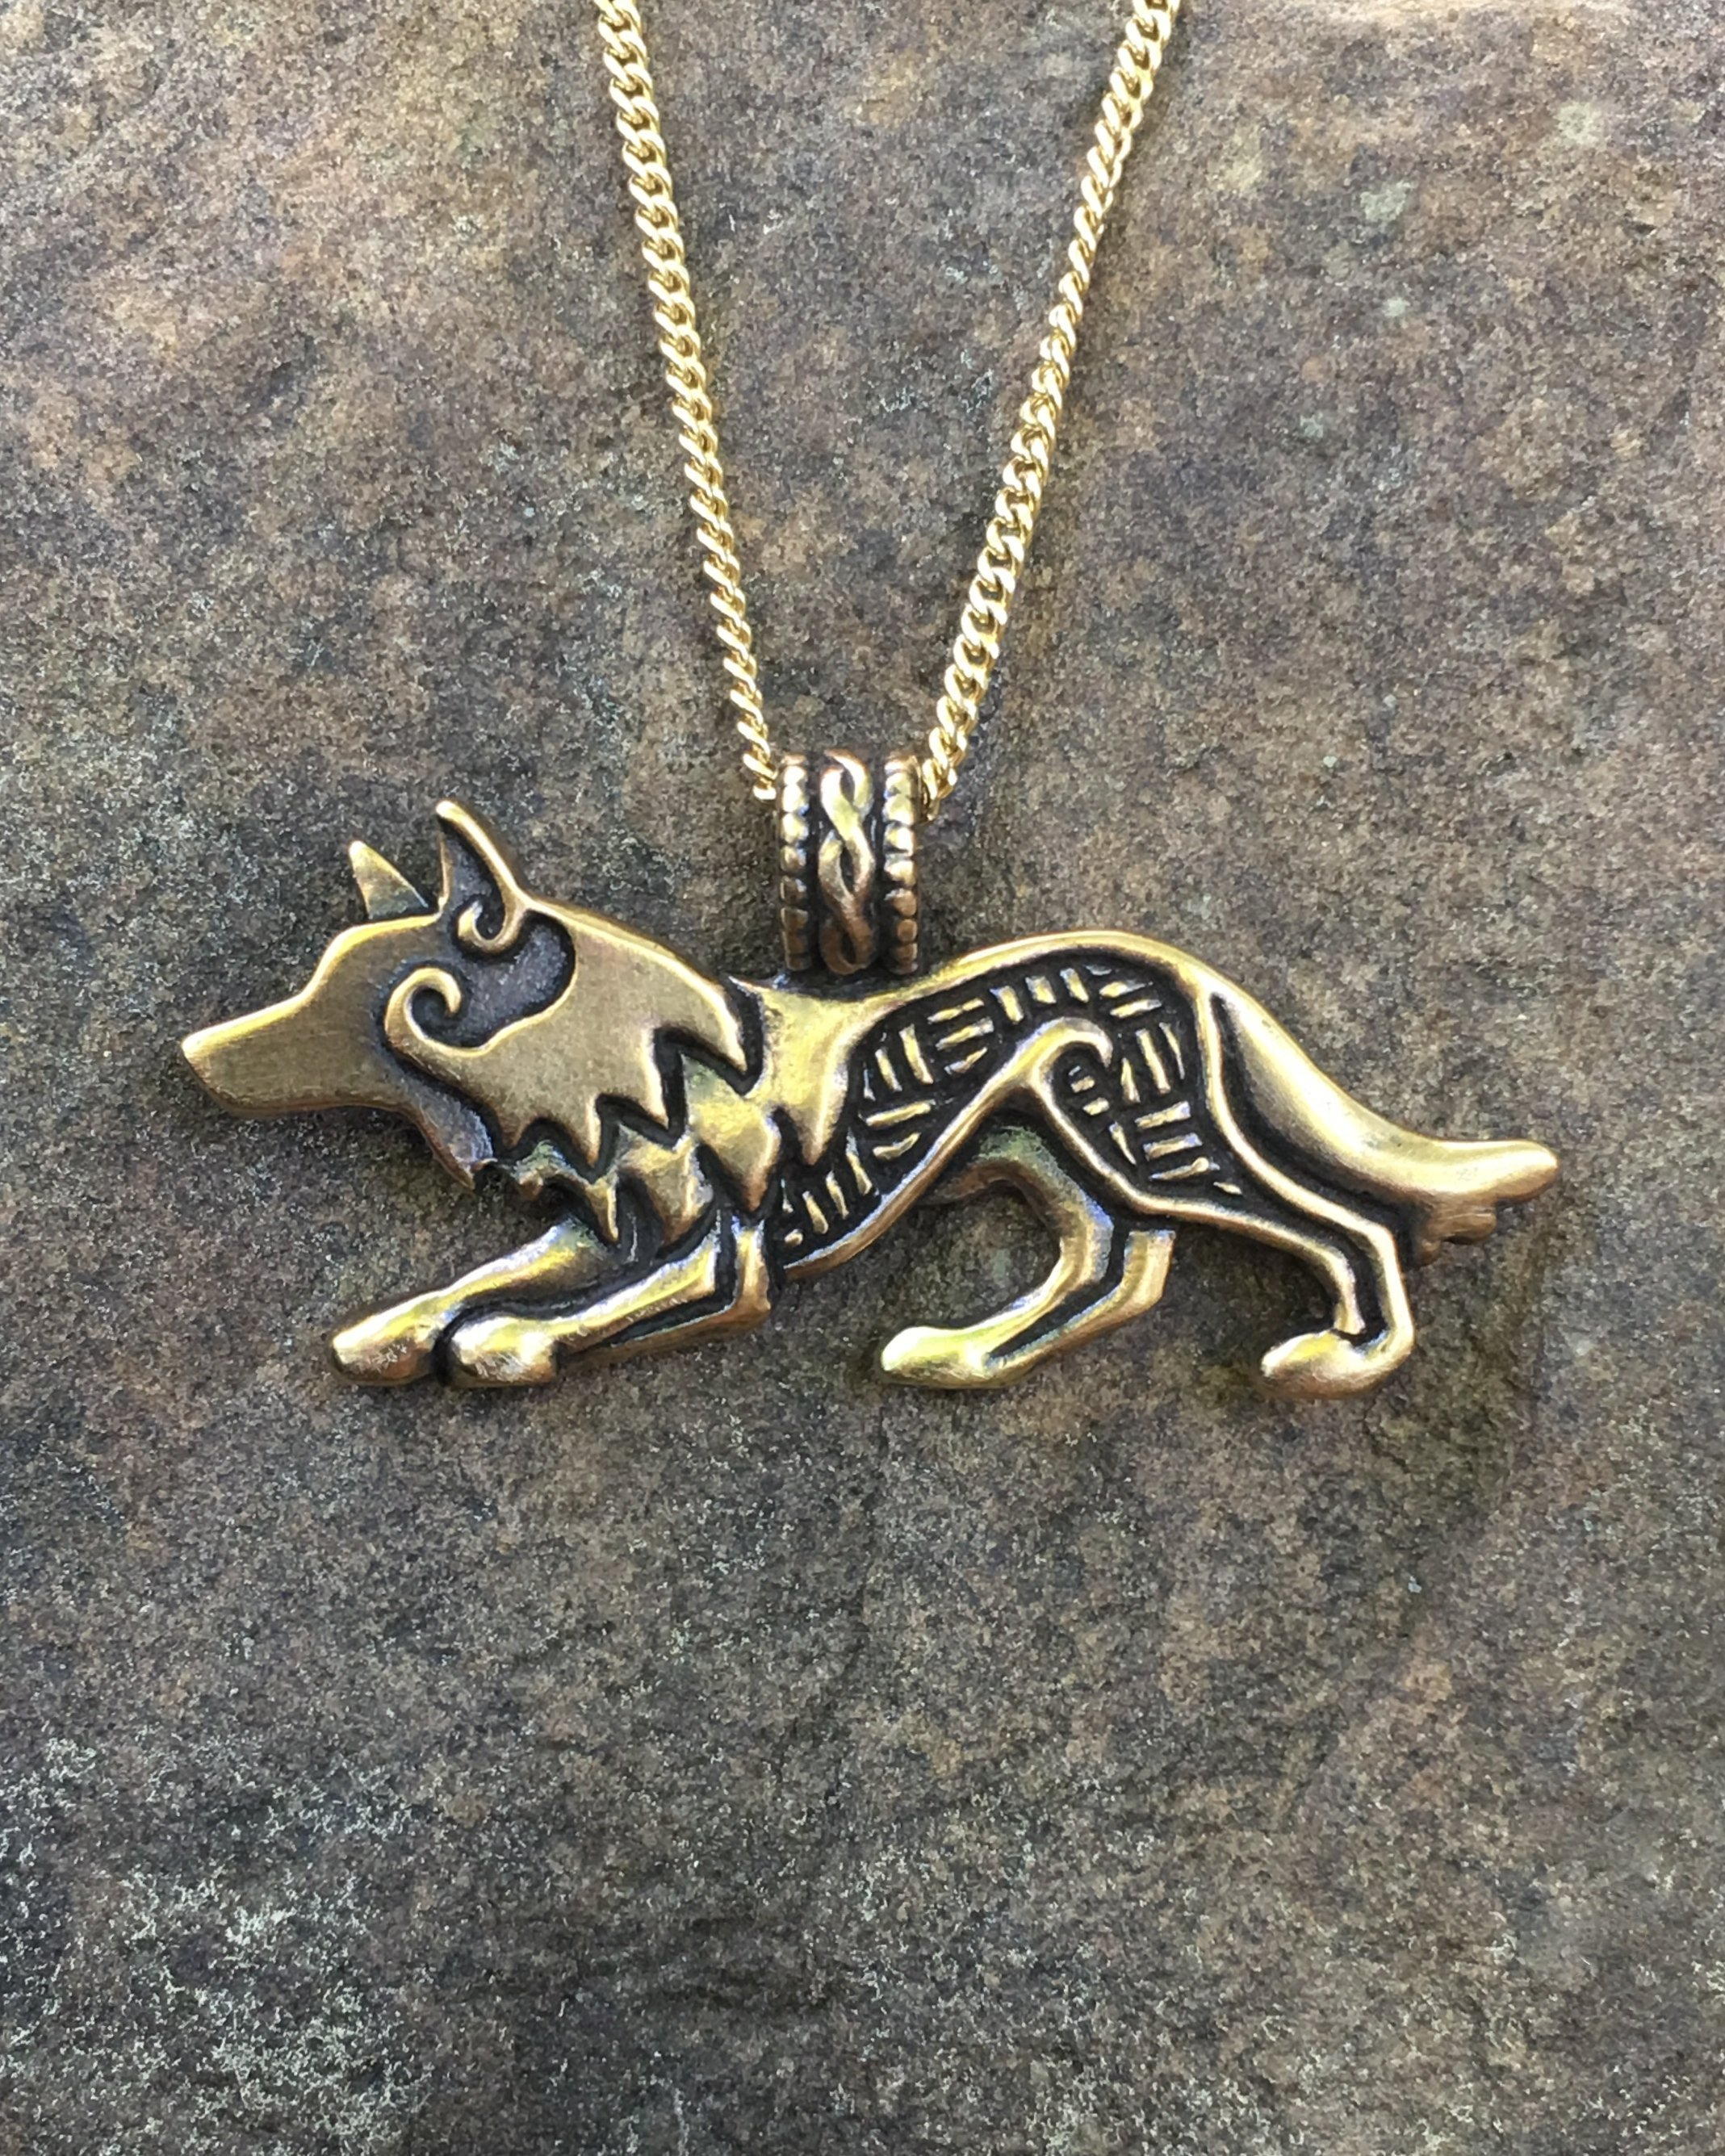 shadow necklace wolf jewelry series i cholo pendant lobo han products head